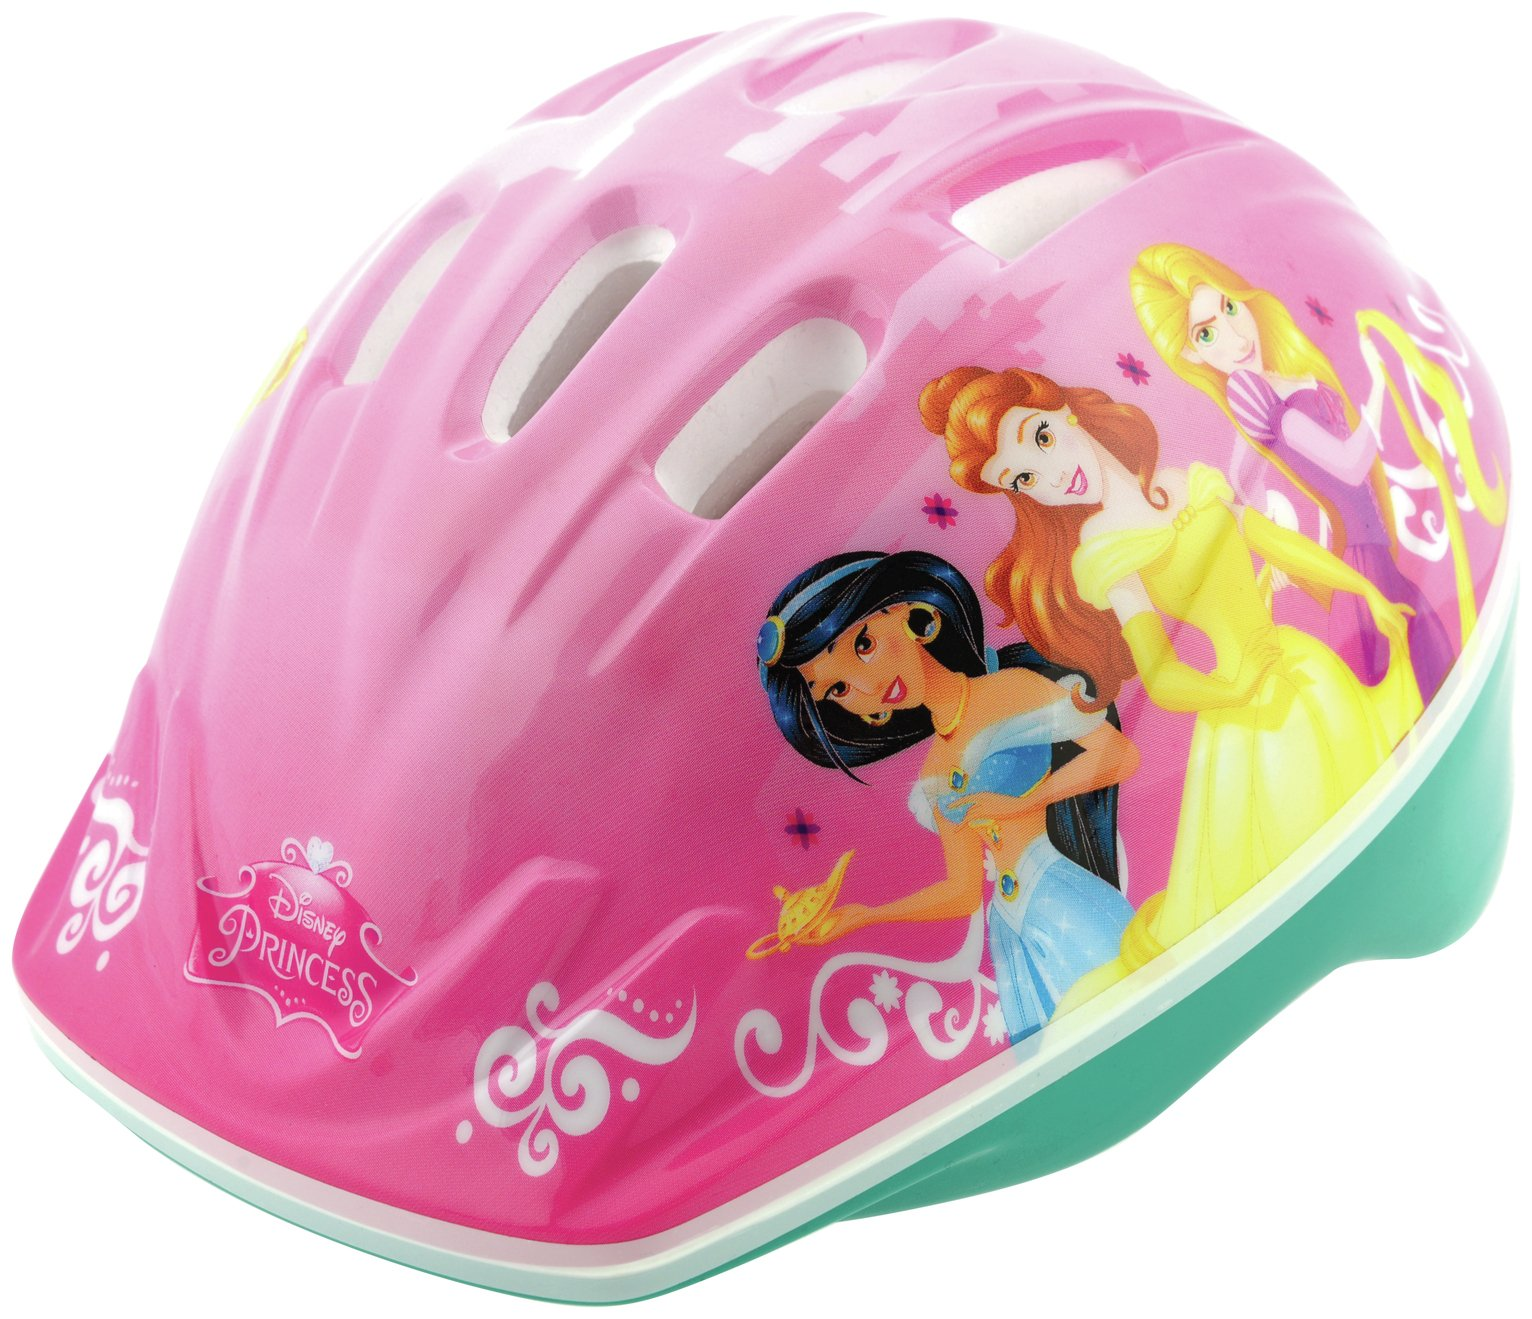 Disney Princess Bike Helmet from Disney Princess